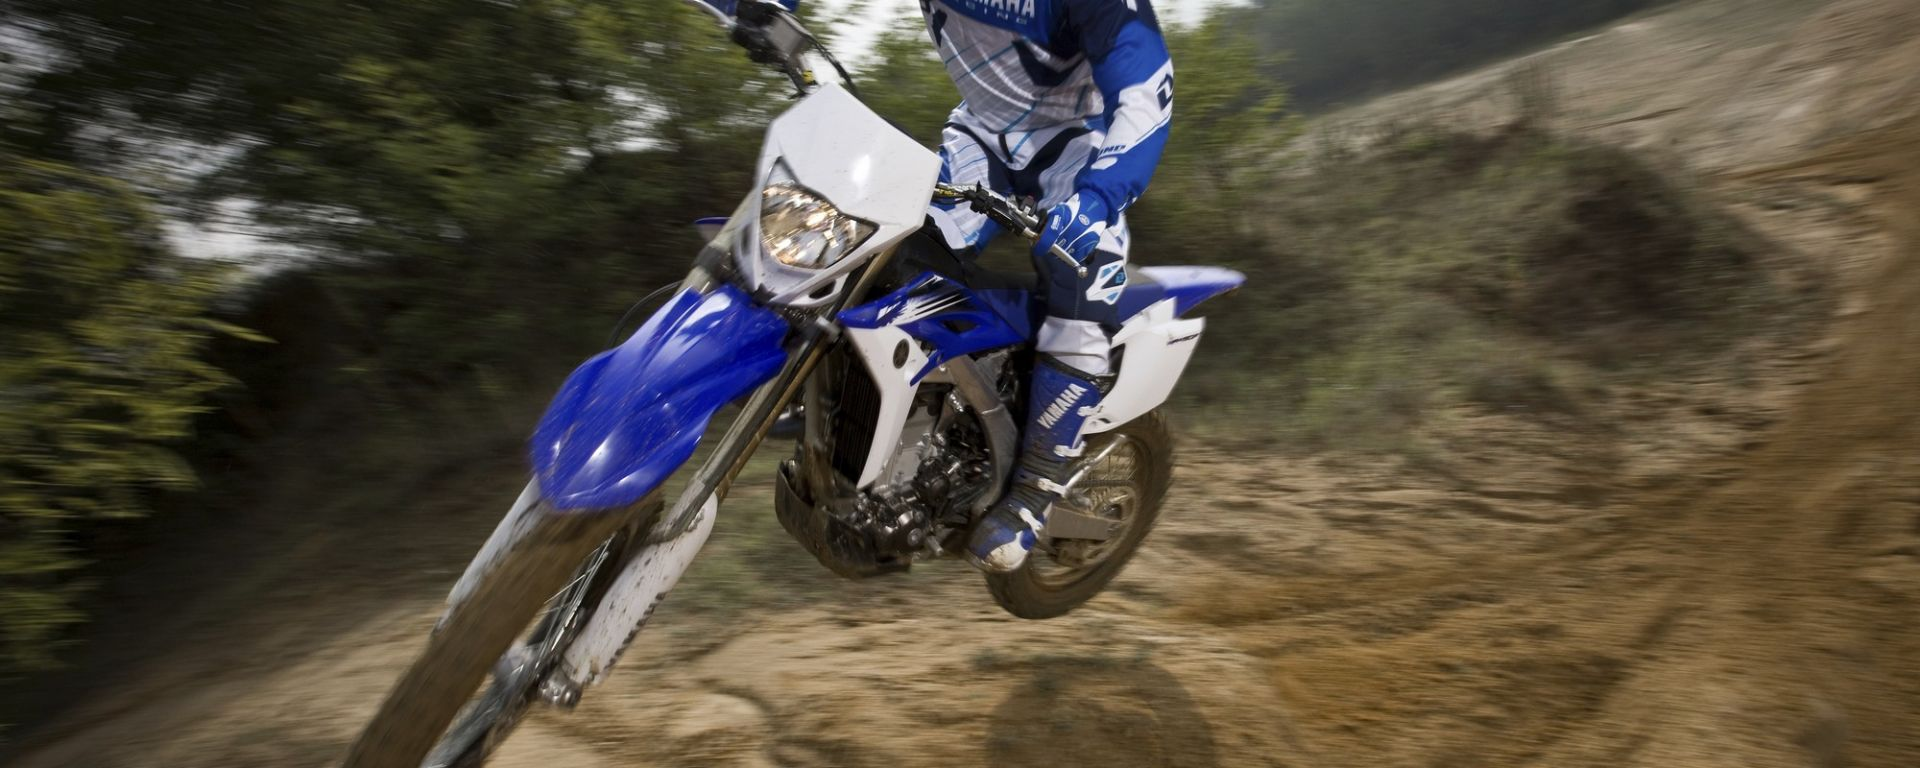 Yamaha: partono gli incentivi off road